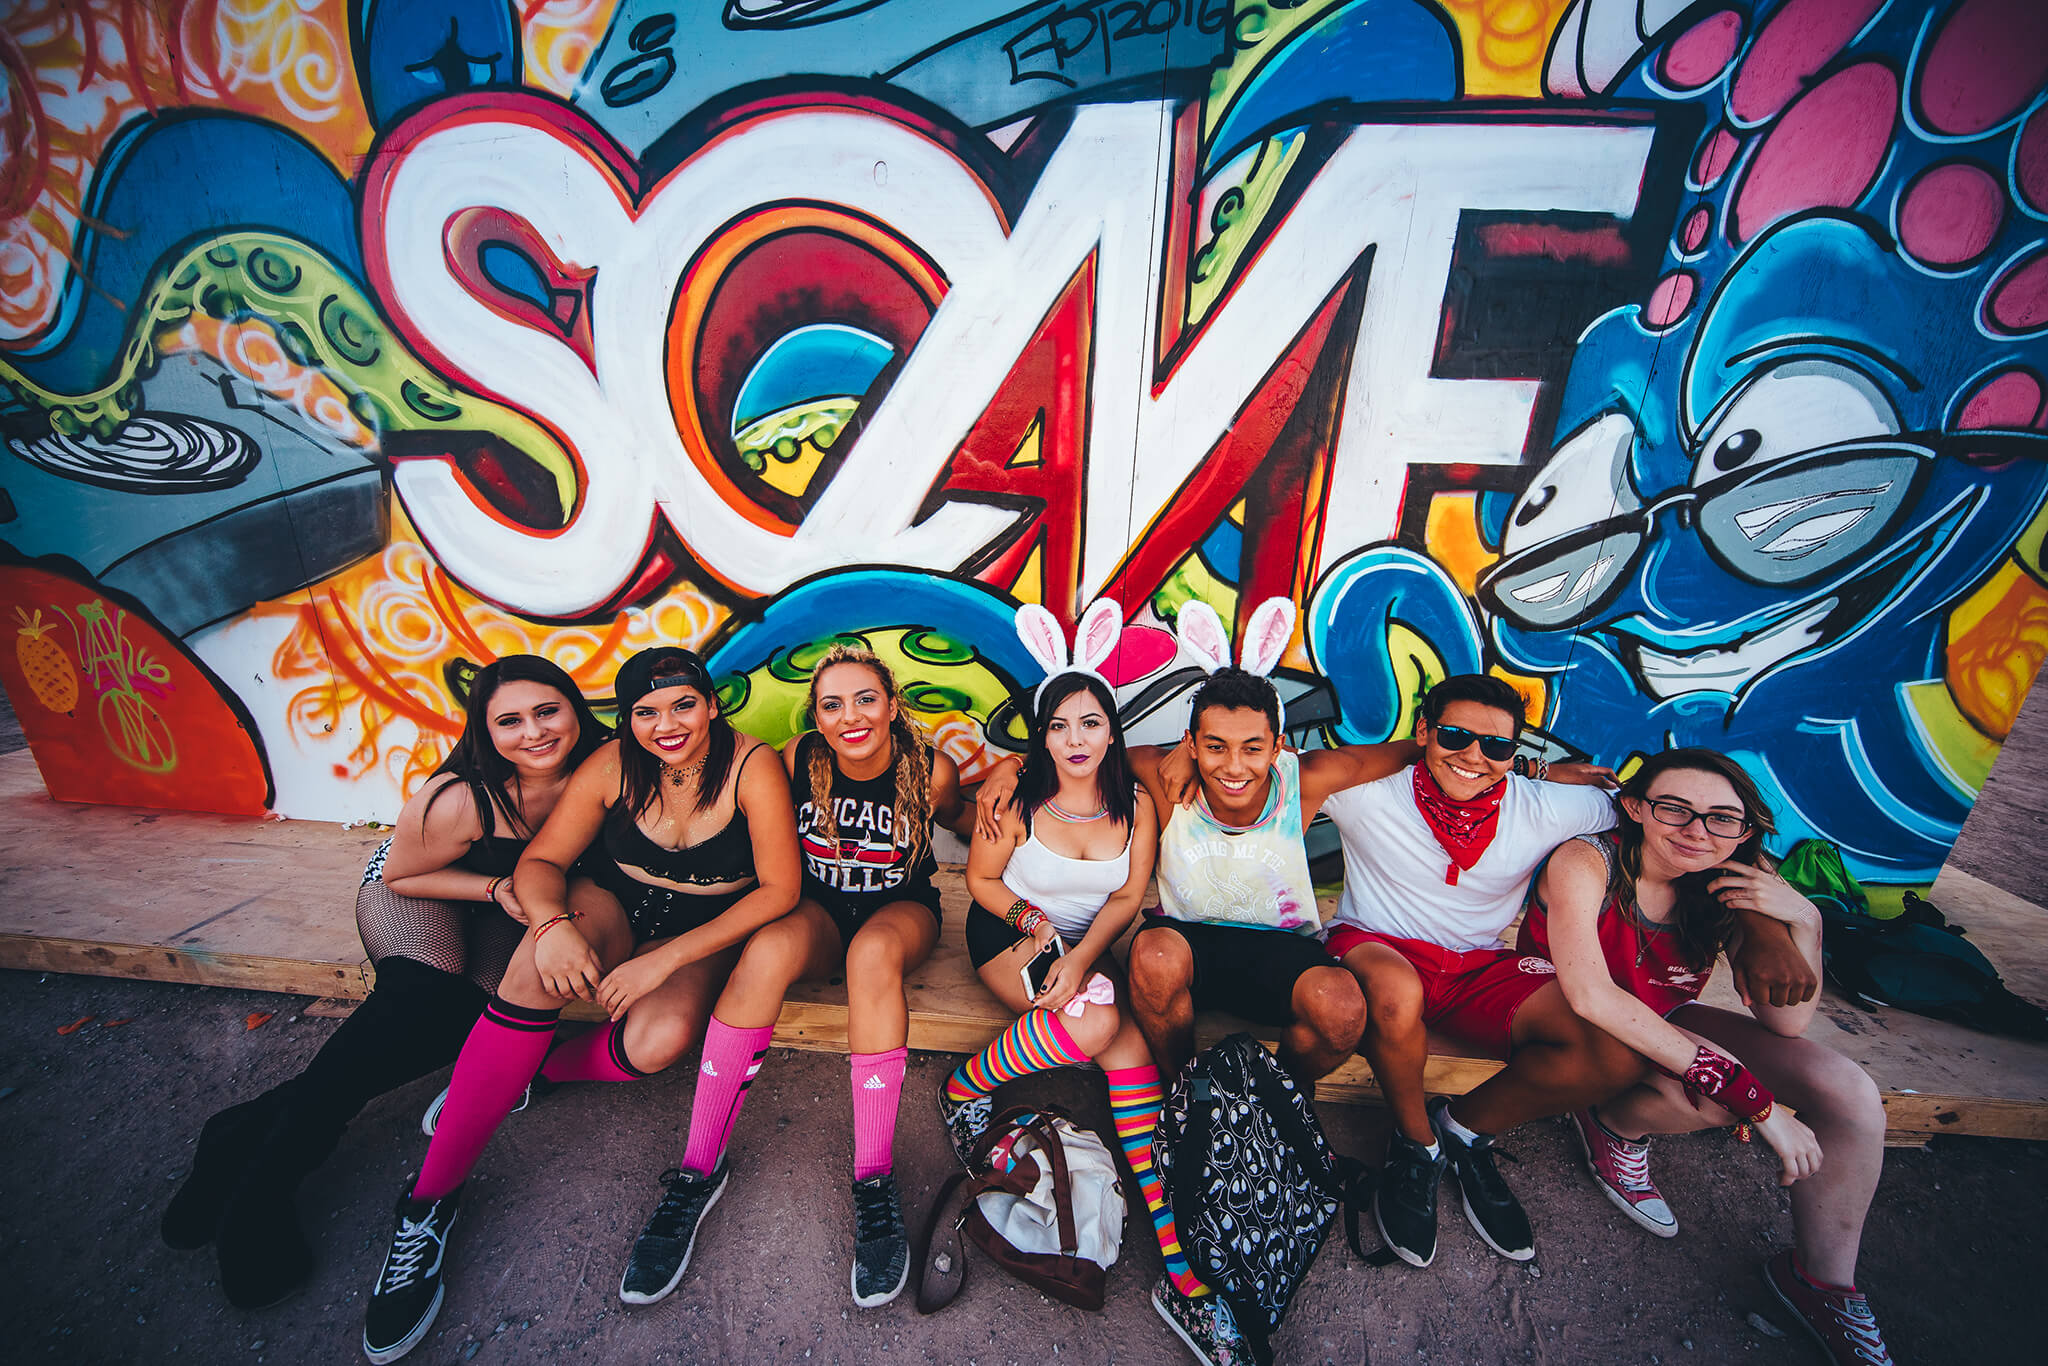 sun city squad at mural